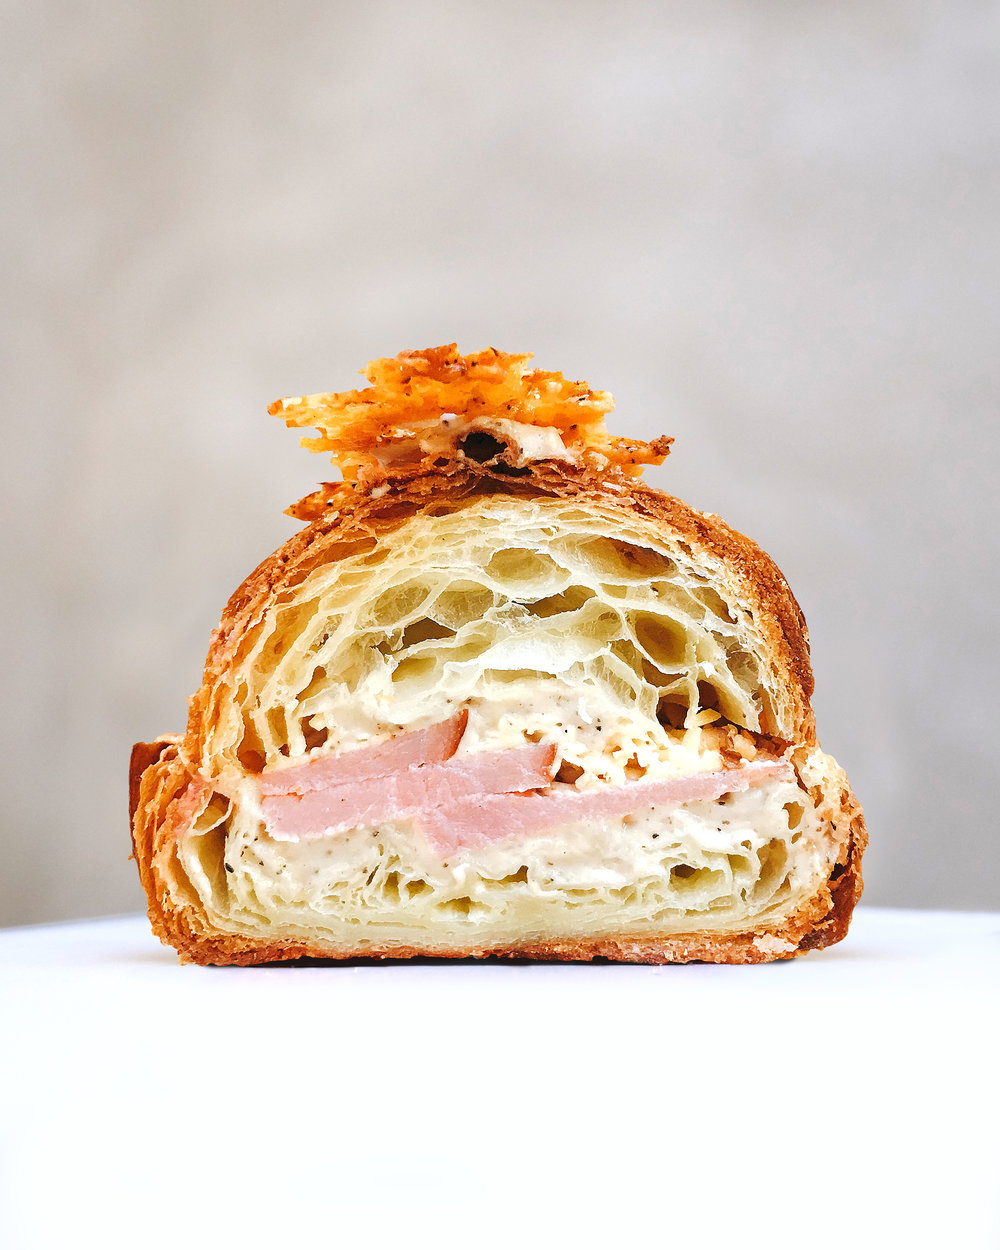 Ham & Cheese Twice Baked $8 - Thick cut smoked ham, Gouda cheese, cheddar cheese and a super creamy béchamel sauce baked in our classic croissant and then topped with crispy cheese shards.